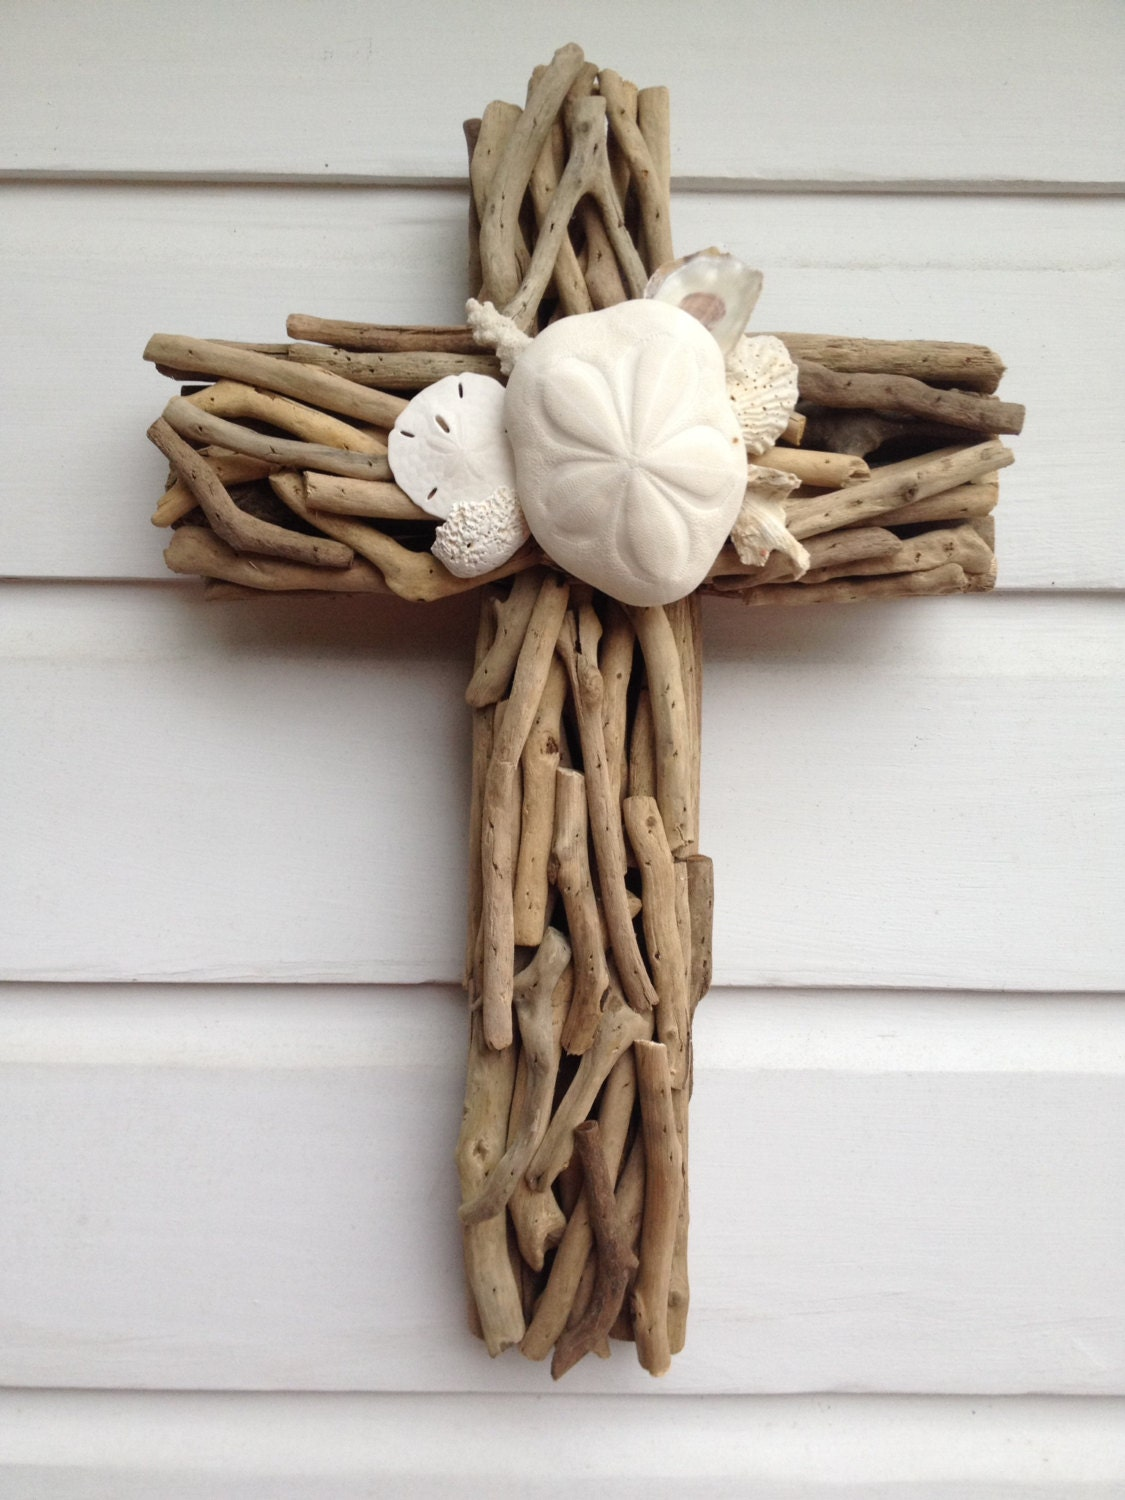 driftwood seashell cross beach house wall decor. Black Bedroom Furniture Sets. Home Design Ideas